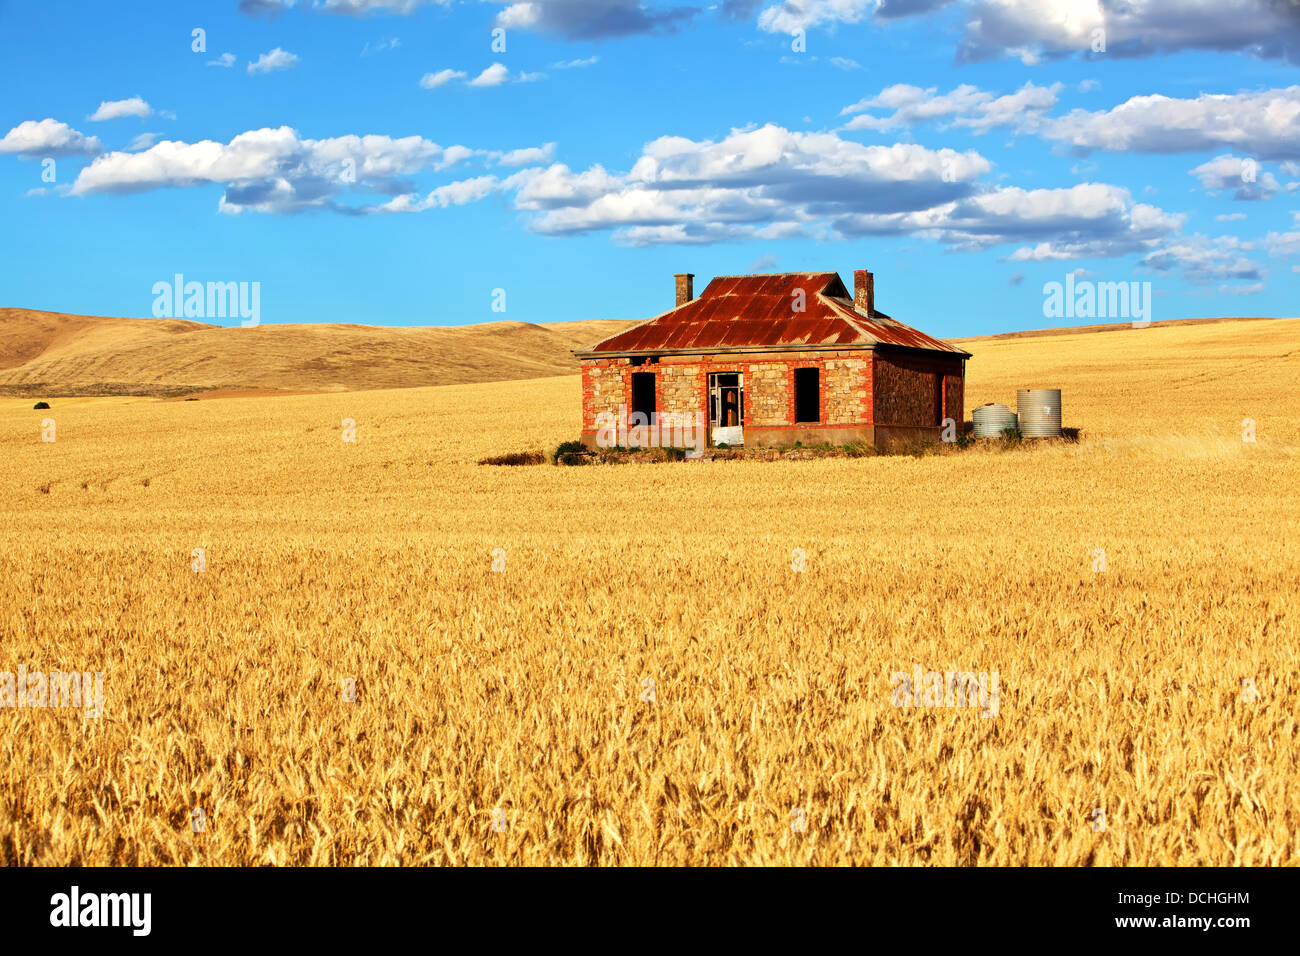 old abandoned farm house homestead sits derelict in the middle of DCHGHM - Get Images Of Old Australian Farm Houses  Pics